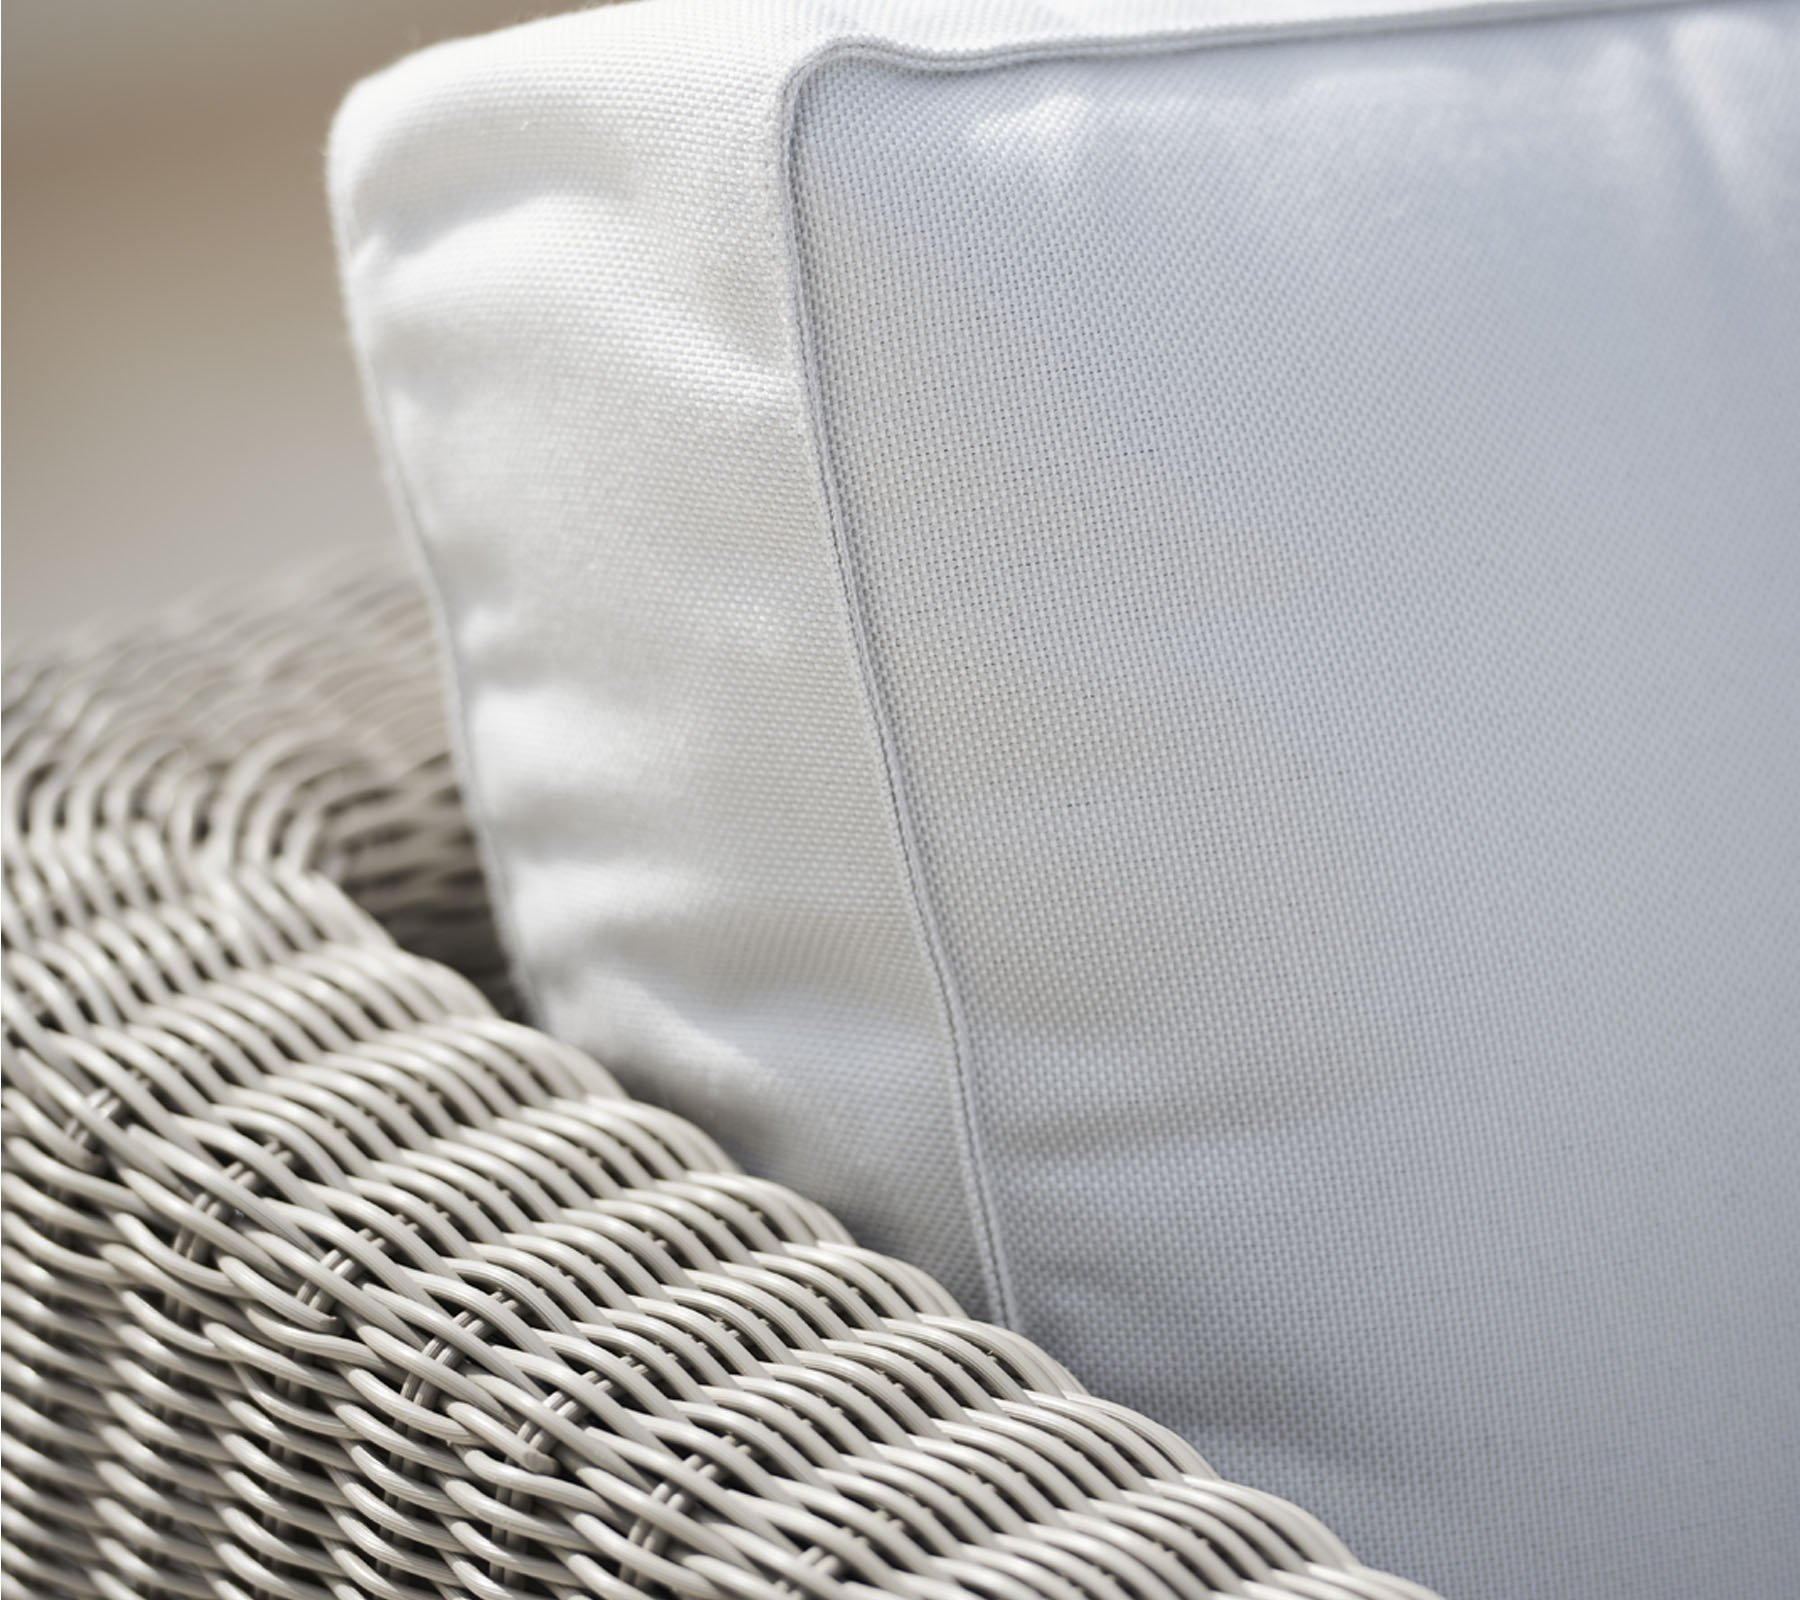 Connect Right Chaise Lounger from Cane-line, designed by Cane-line Design Team